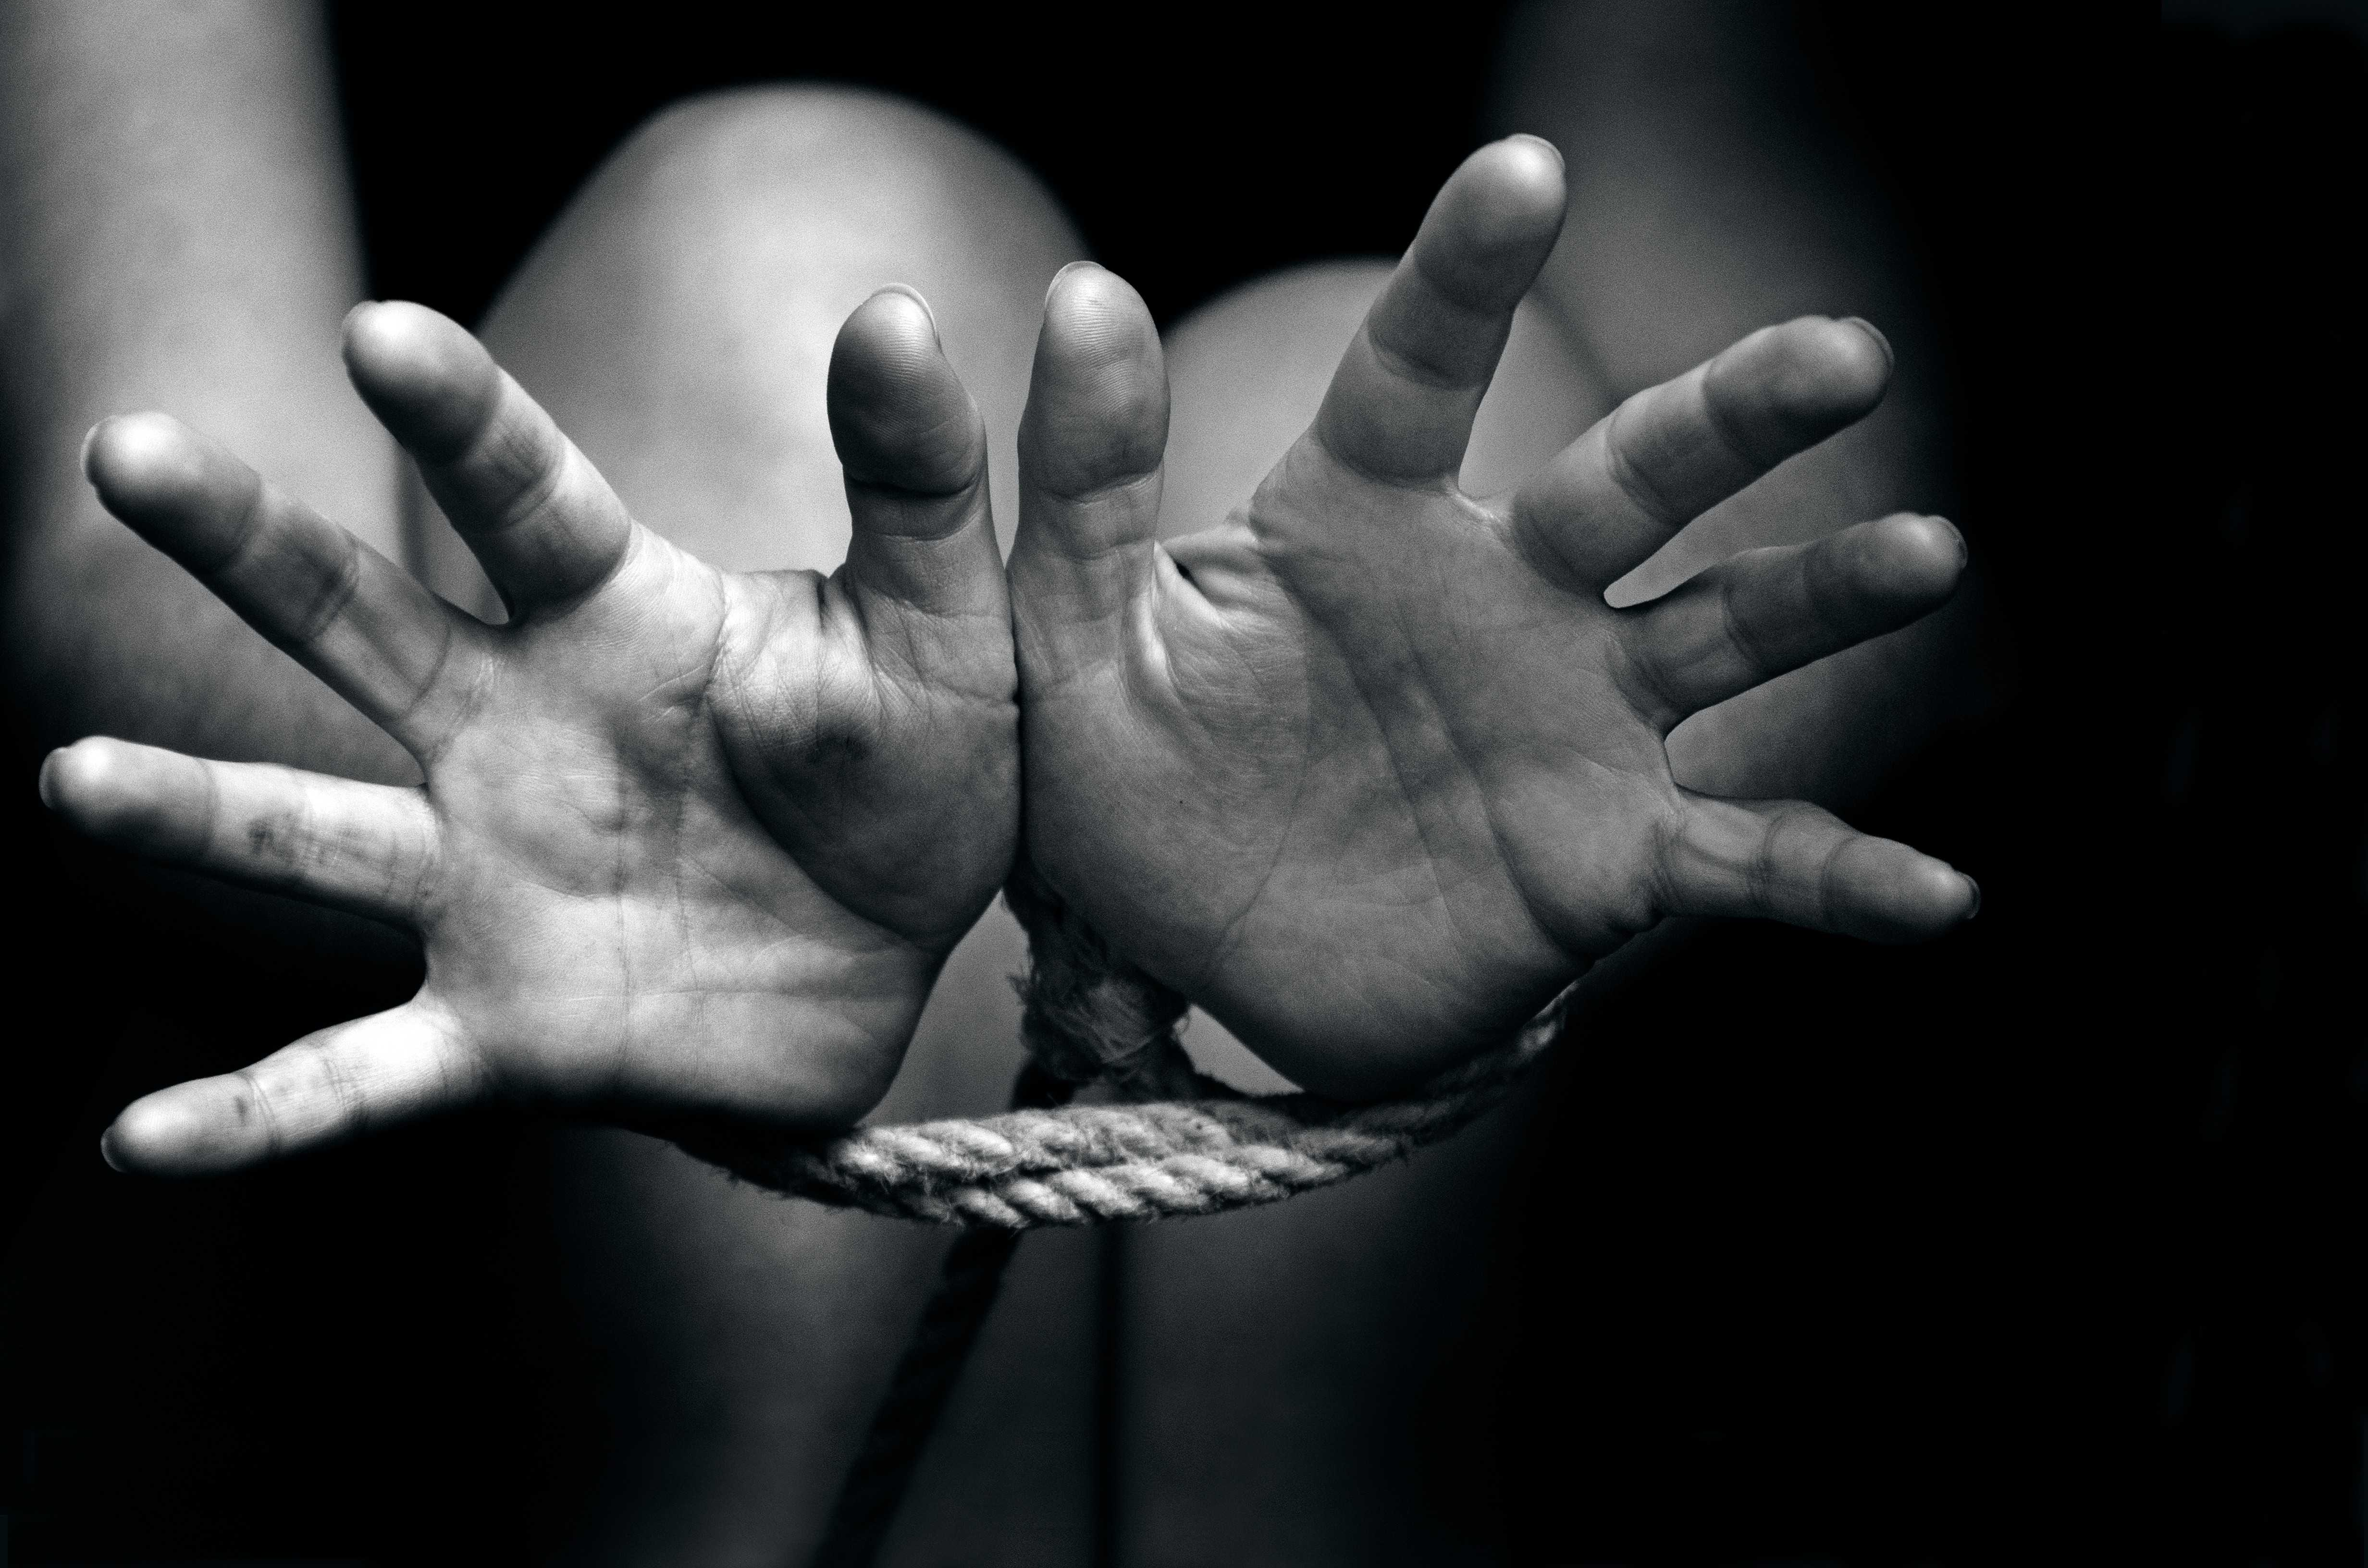 Image from http://www.metrotimes.com/Blogs/archives/2015/04/16/human-trafficking-survivor-forum-to-be-held-in-detroit-on-april-20